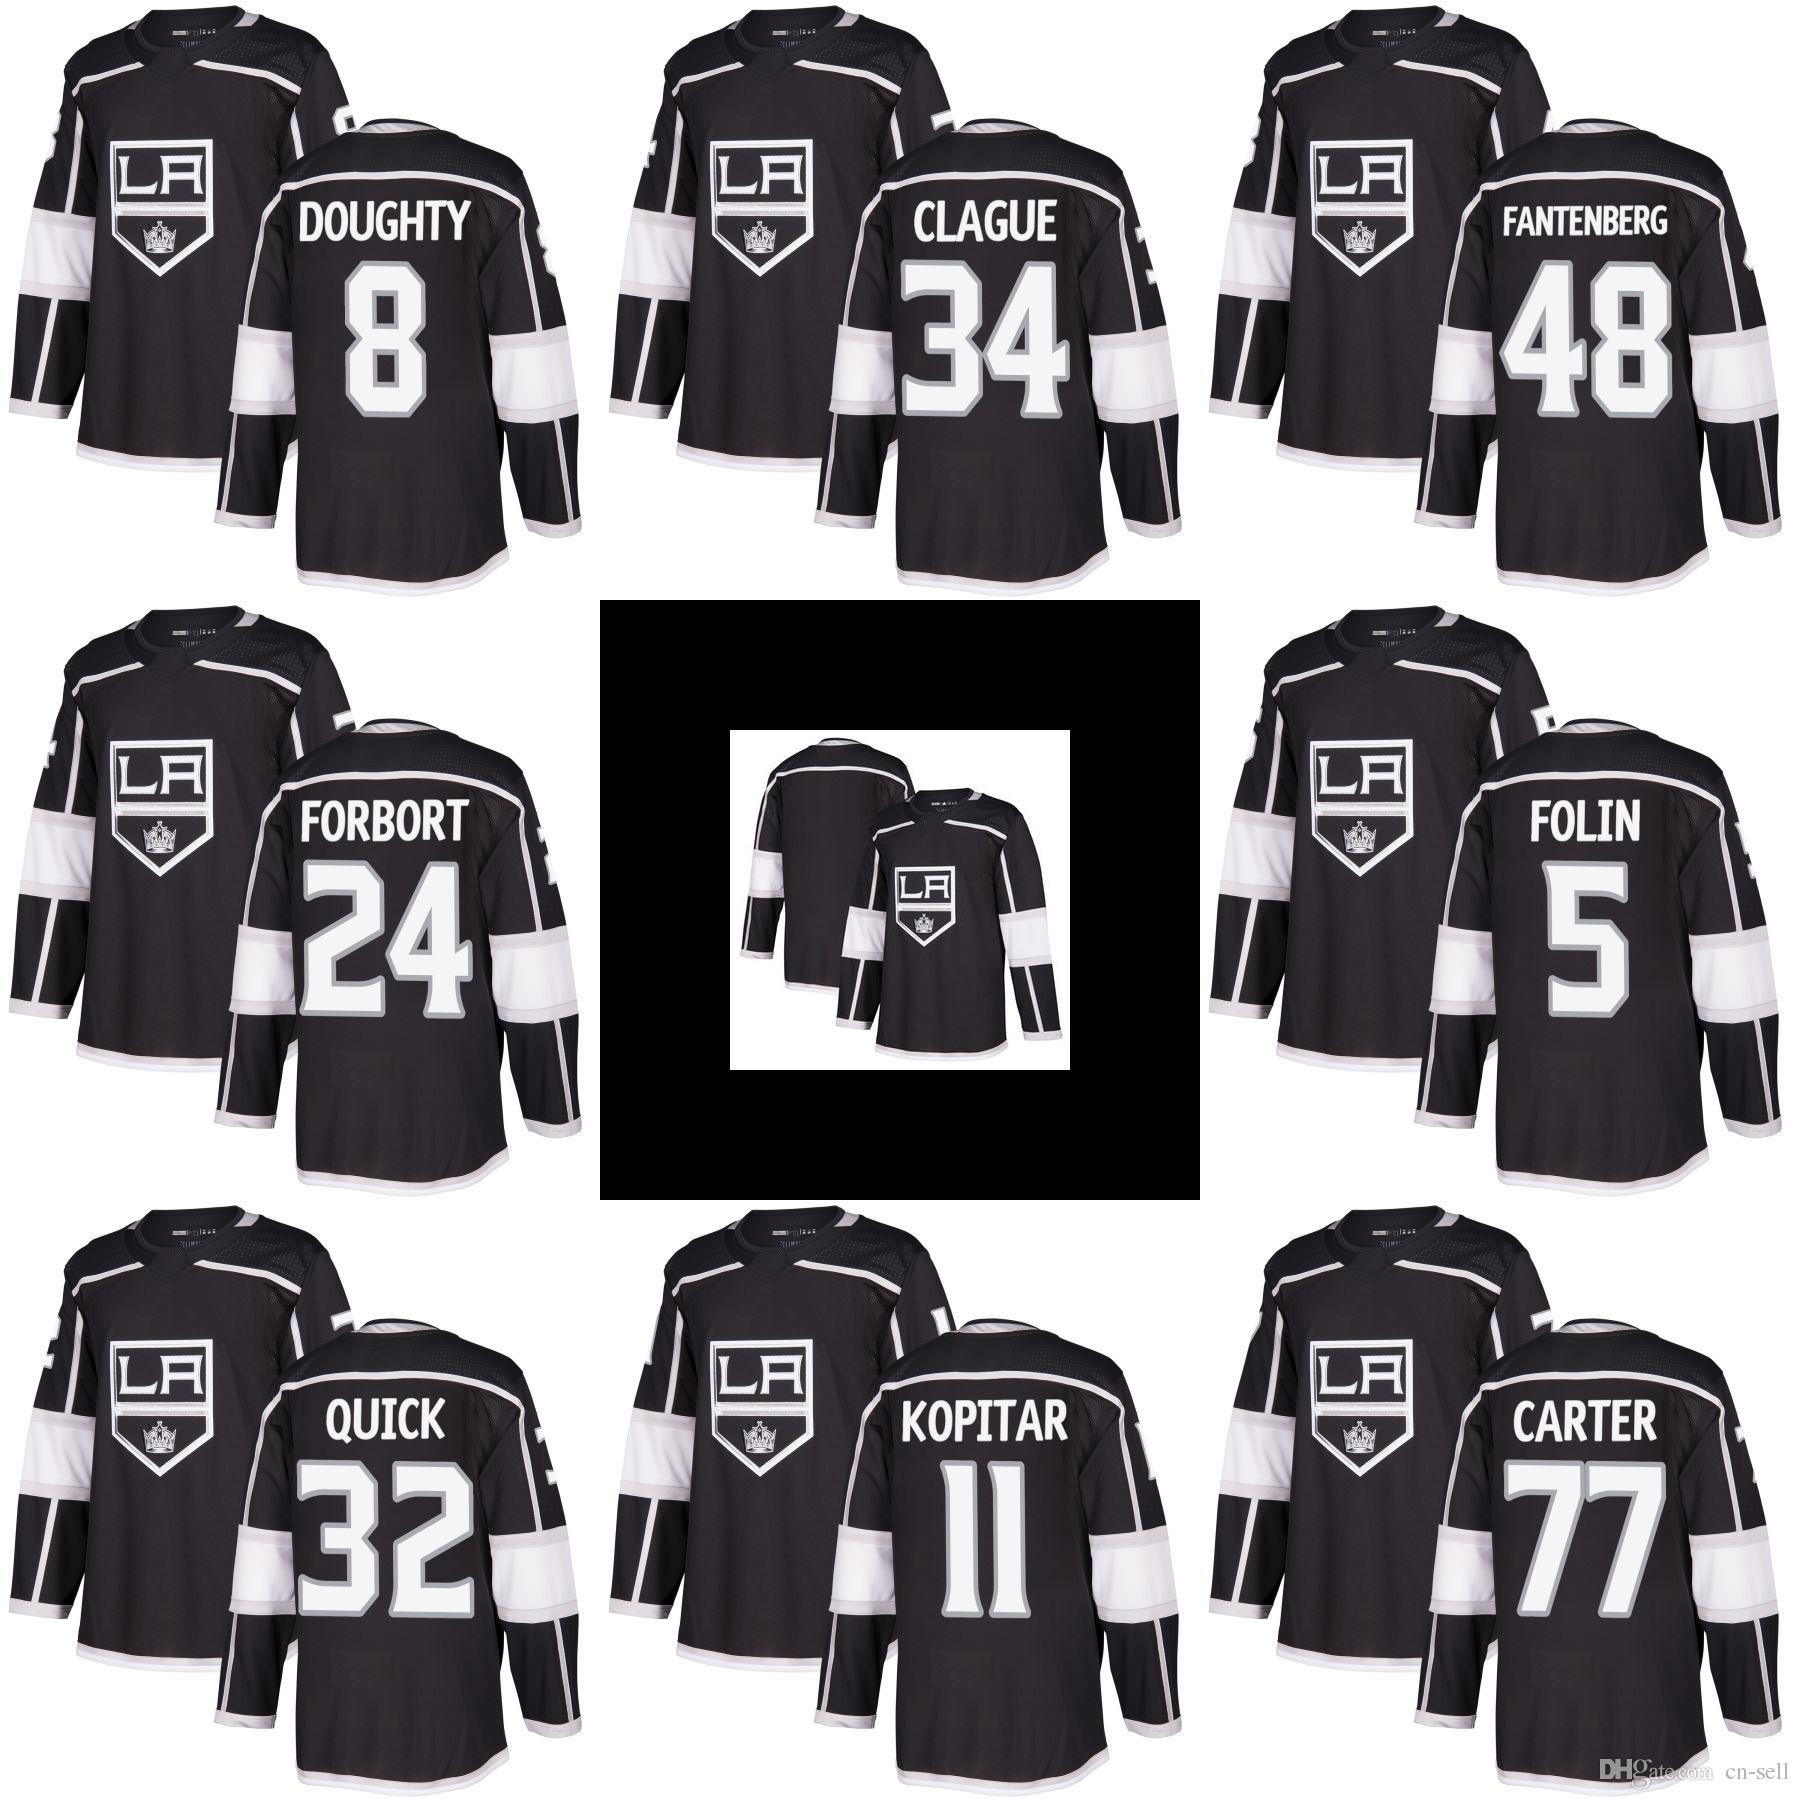 2019 New Jonathan Quick 8 Drew Doughty 77 Jeff Carter Anze Kopitar Marian  Gaborik Mens Home Black LA Kings Hockey Jerseys Stitched A Patch From Cn  Sell de5c6ba97